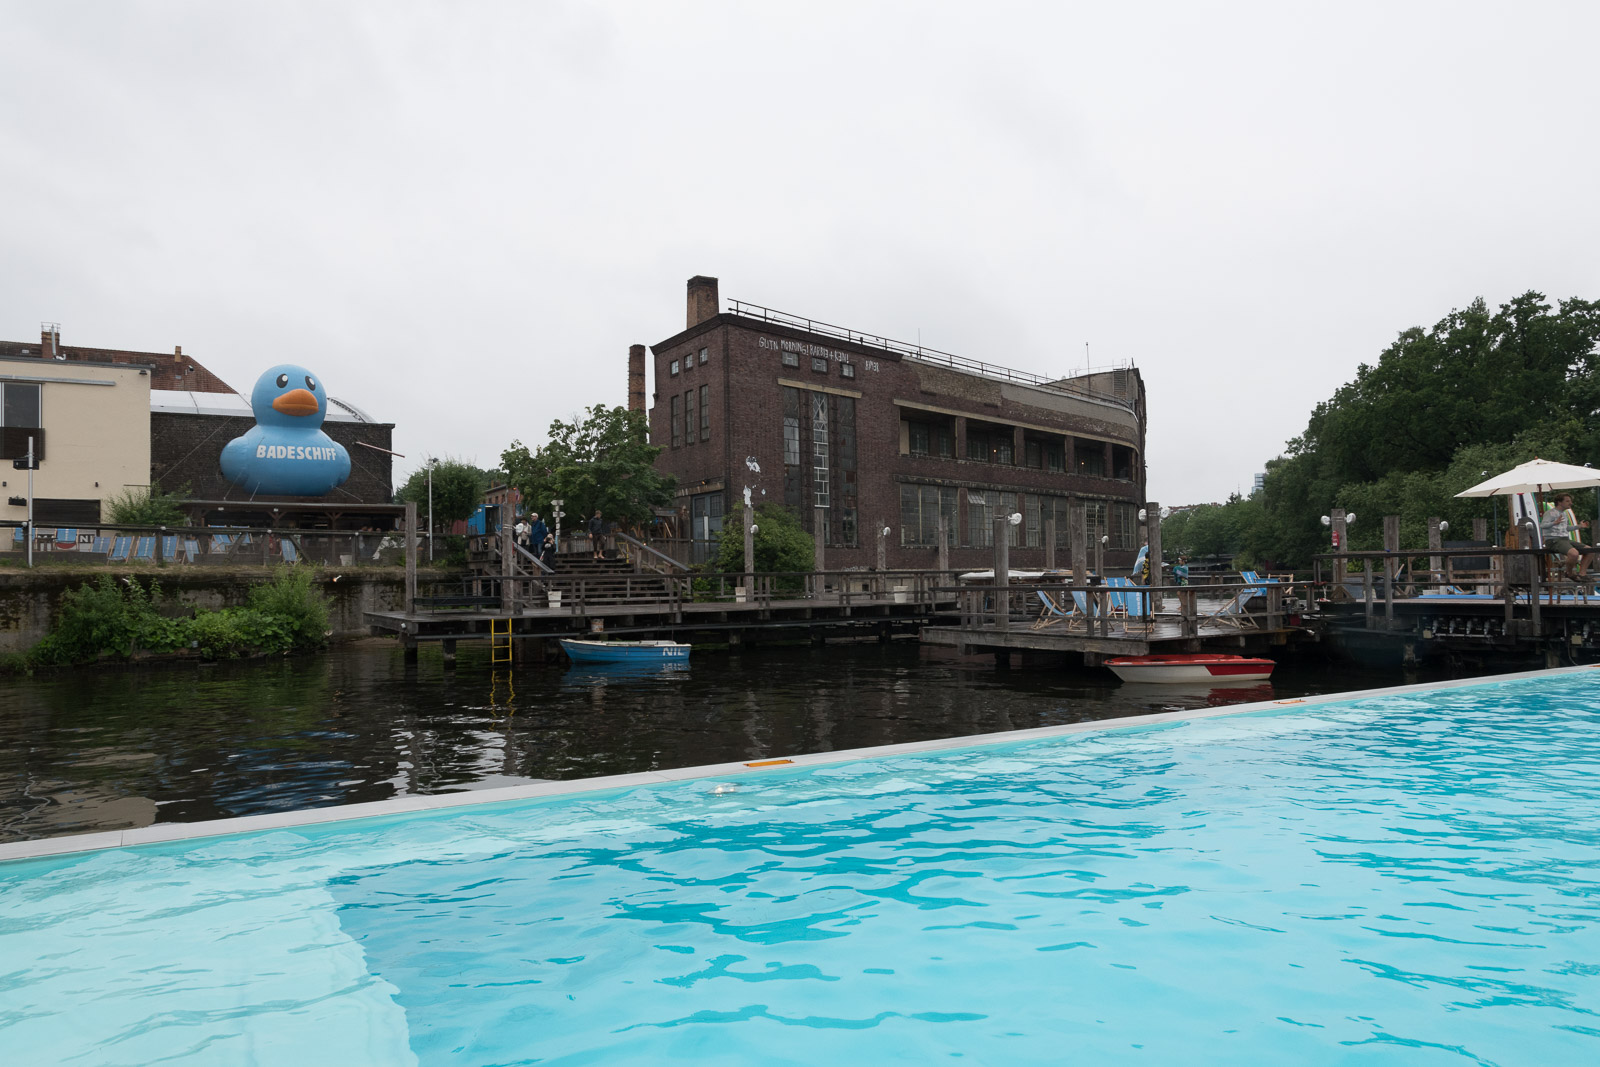 The surrounding of the Badeschiff, seen from the pool.